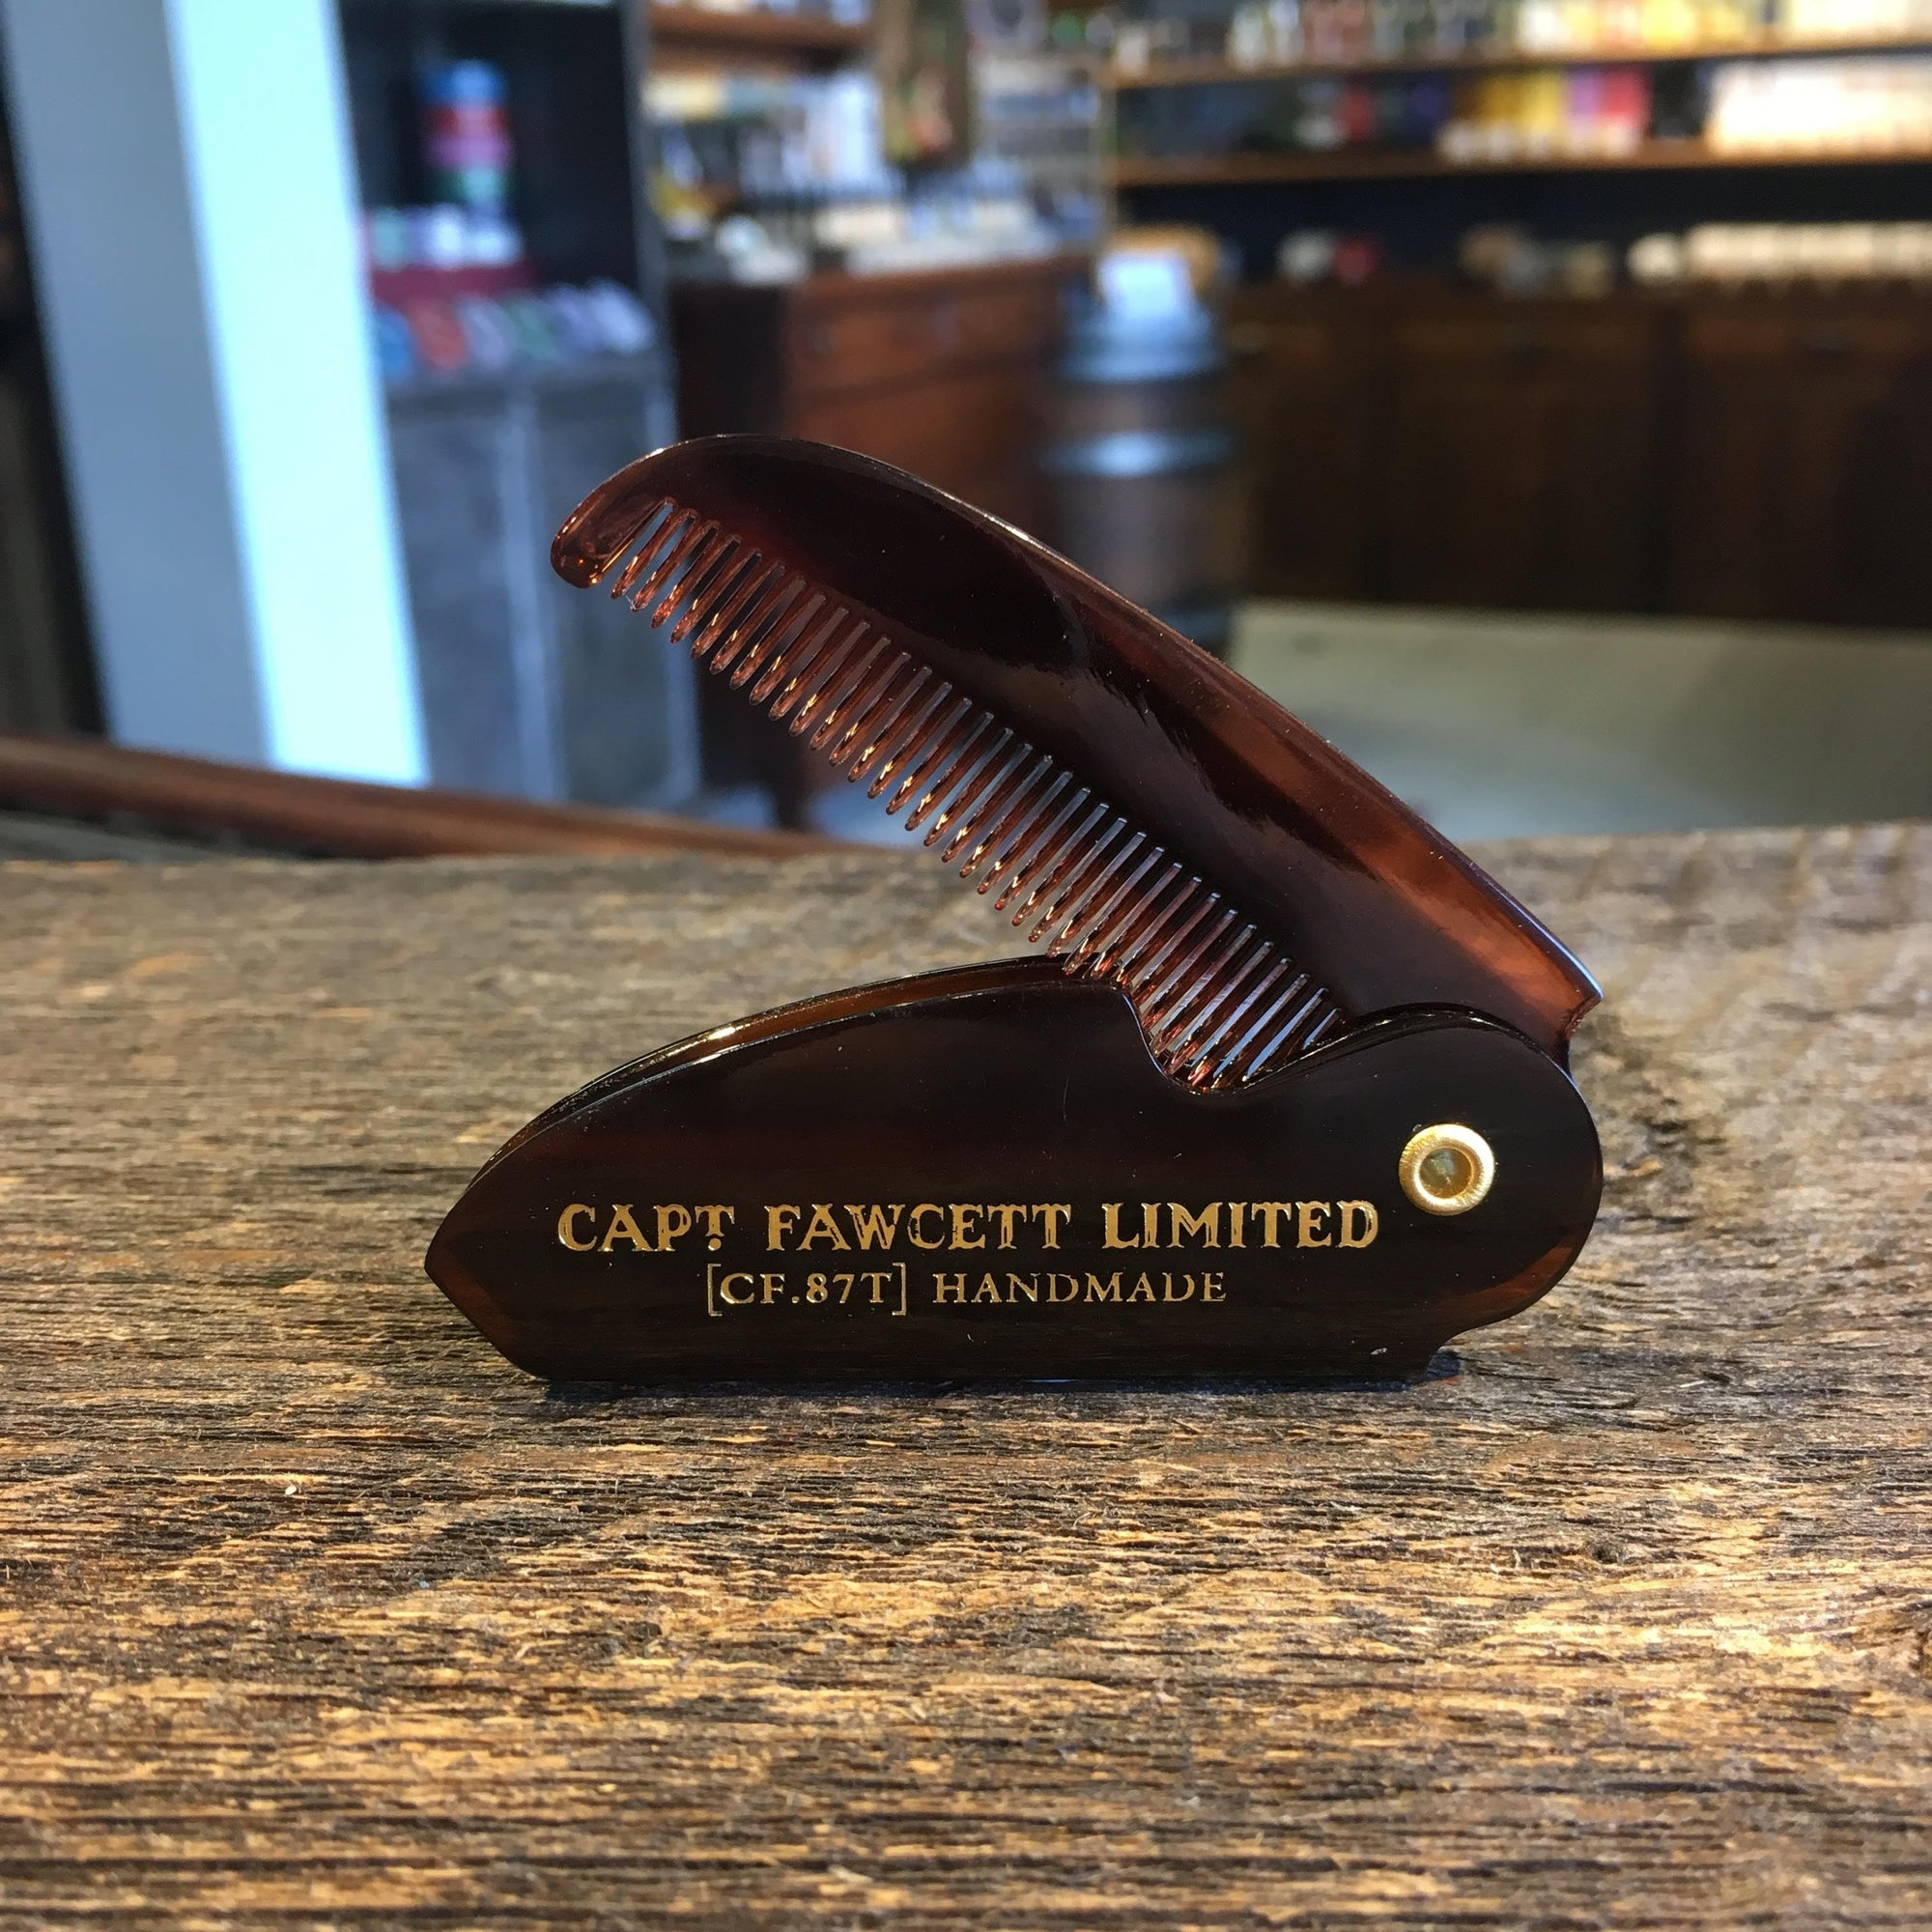 Captain Fawcett's Folding Pocket Moustache Comb 117mm